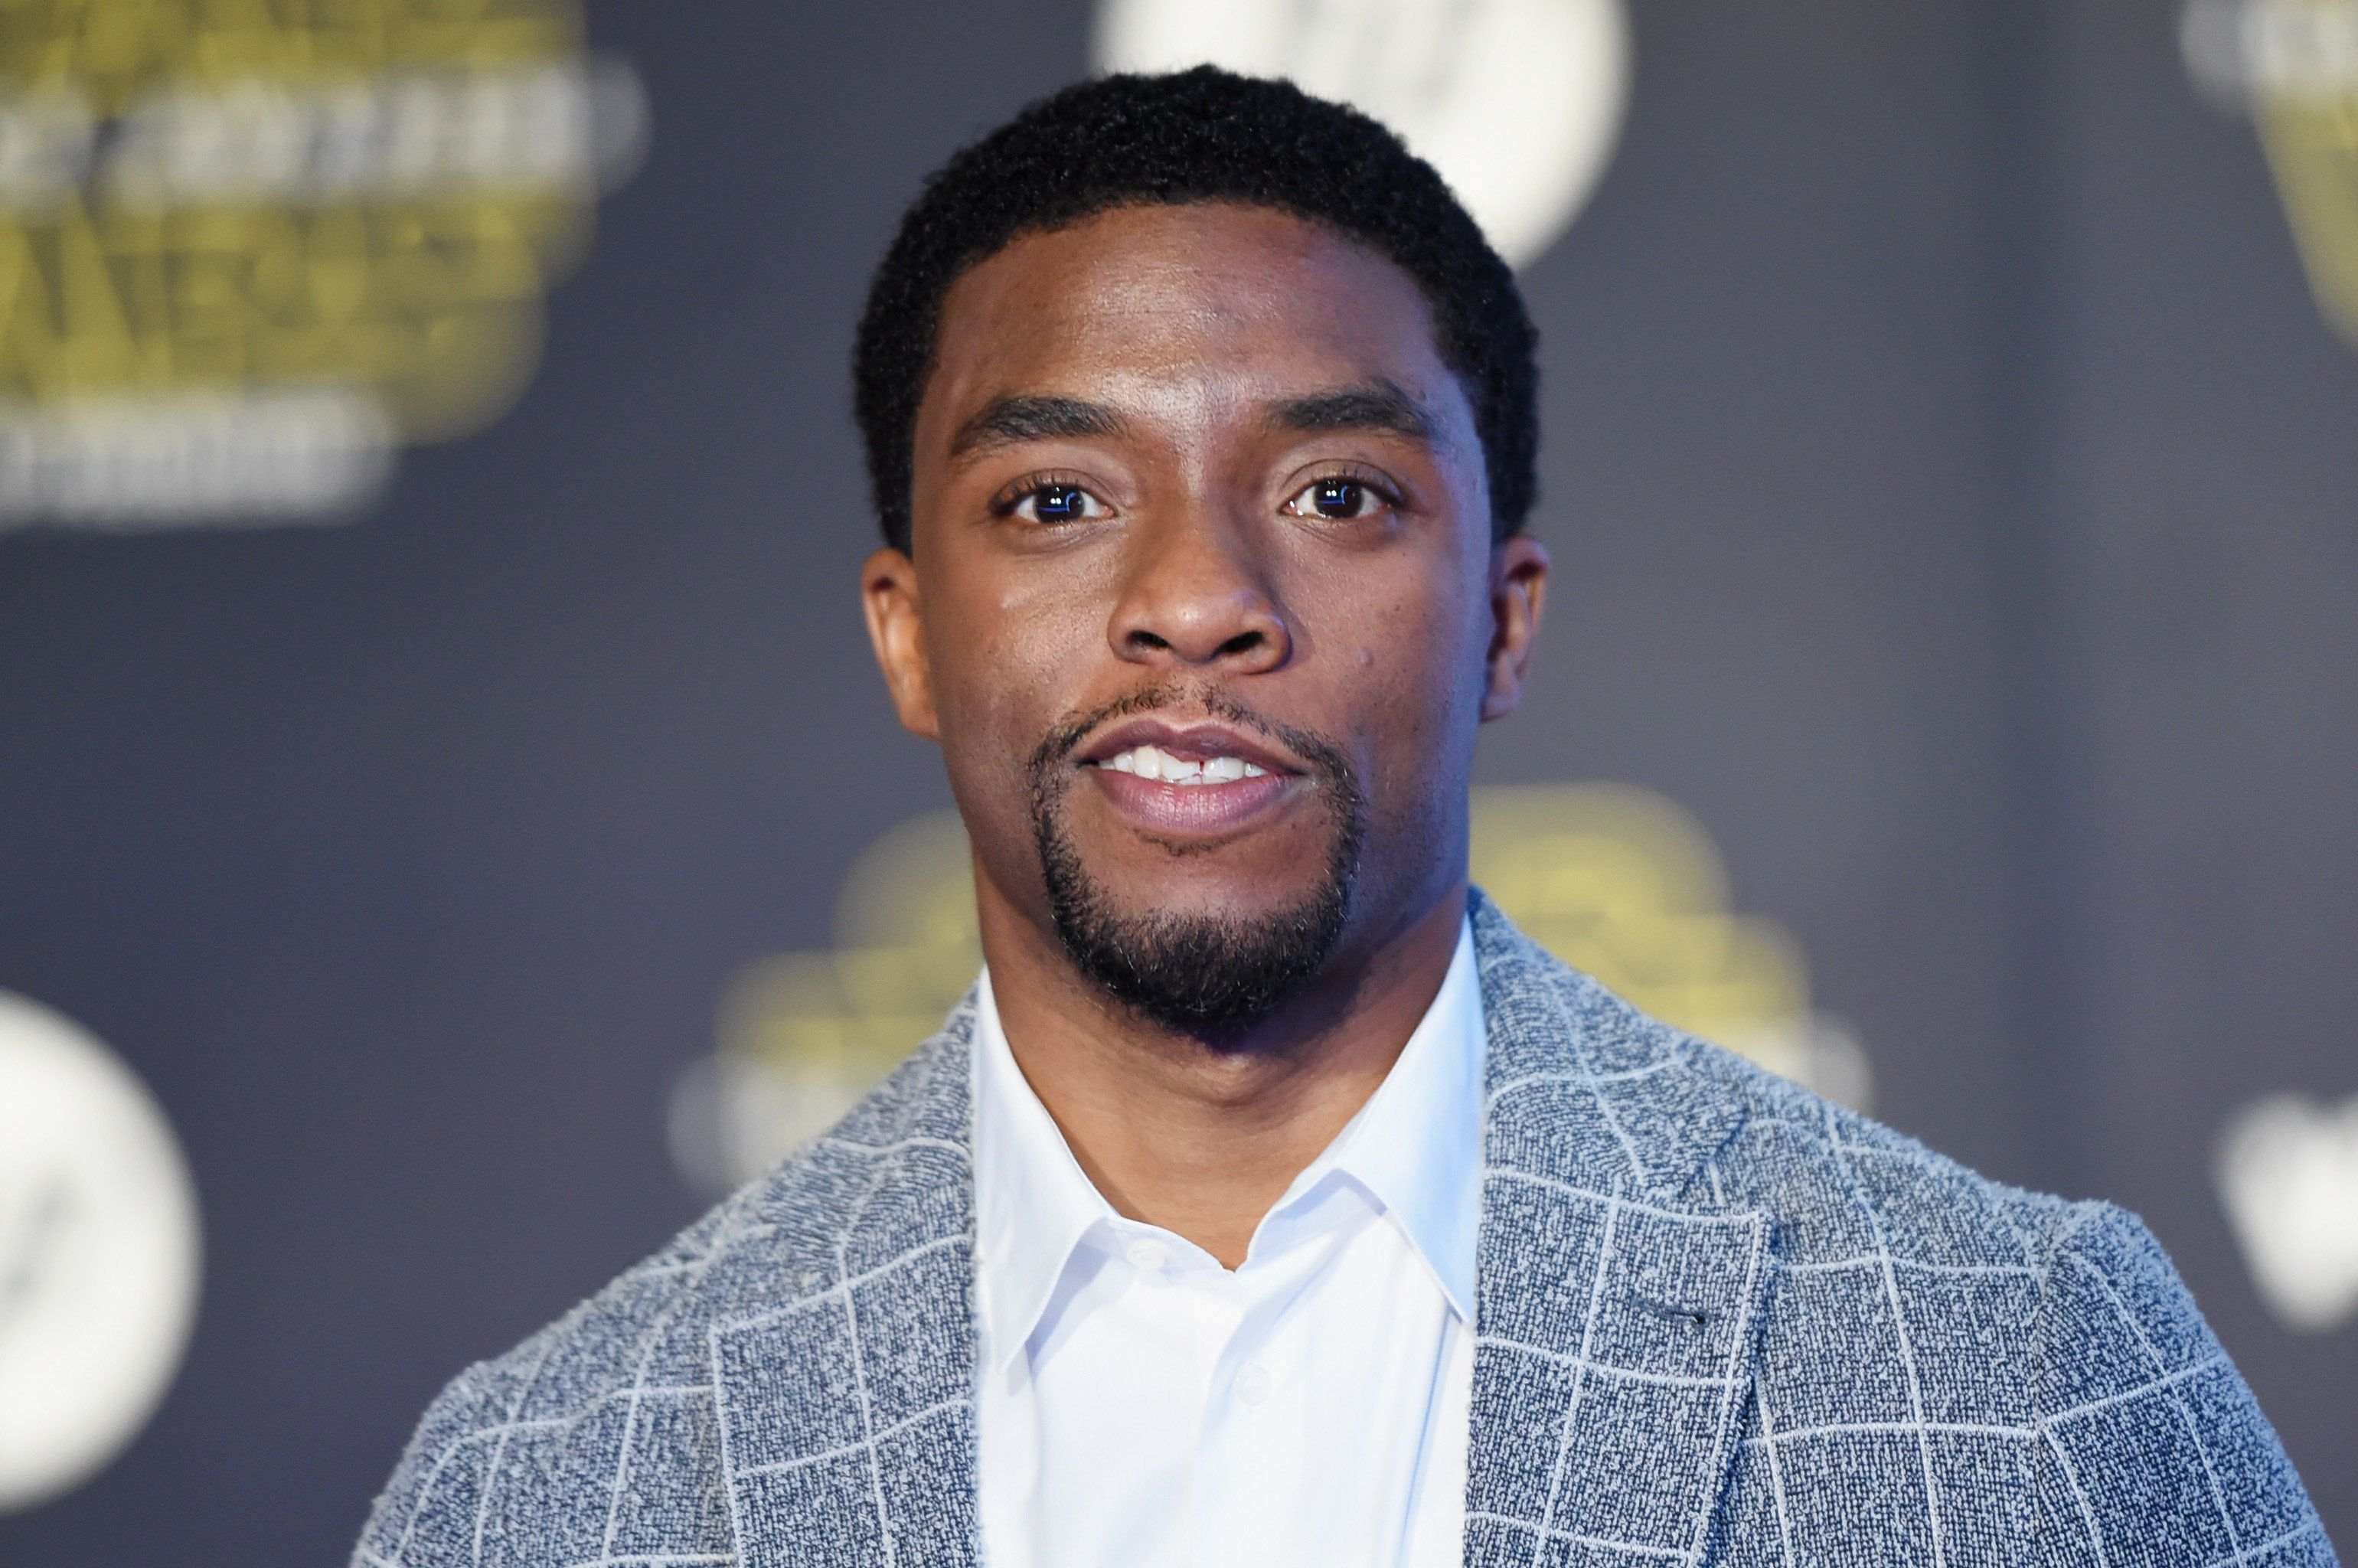 HOLLYWOOD, CA - DECEMBER 14:  Actor Chadwick Boseman attends the Premiere of Walt Disney Pictures and Lucasfilm's 'Star Wars: The Force Awakens' on December 14, 2015 in Hollywood, California.  (Photo by Jason Merritt/Getty Images)